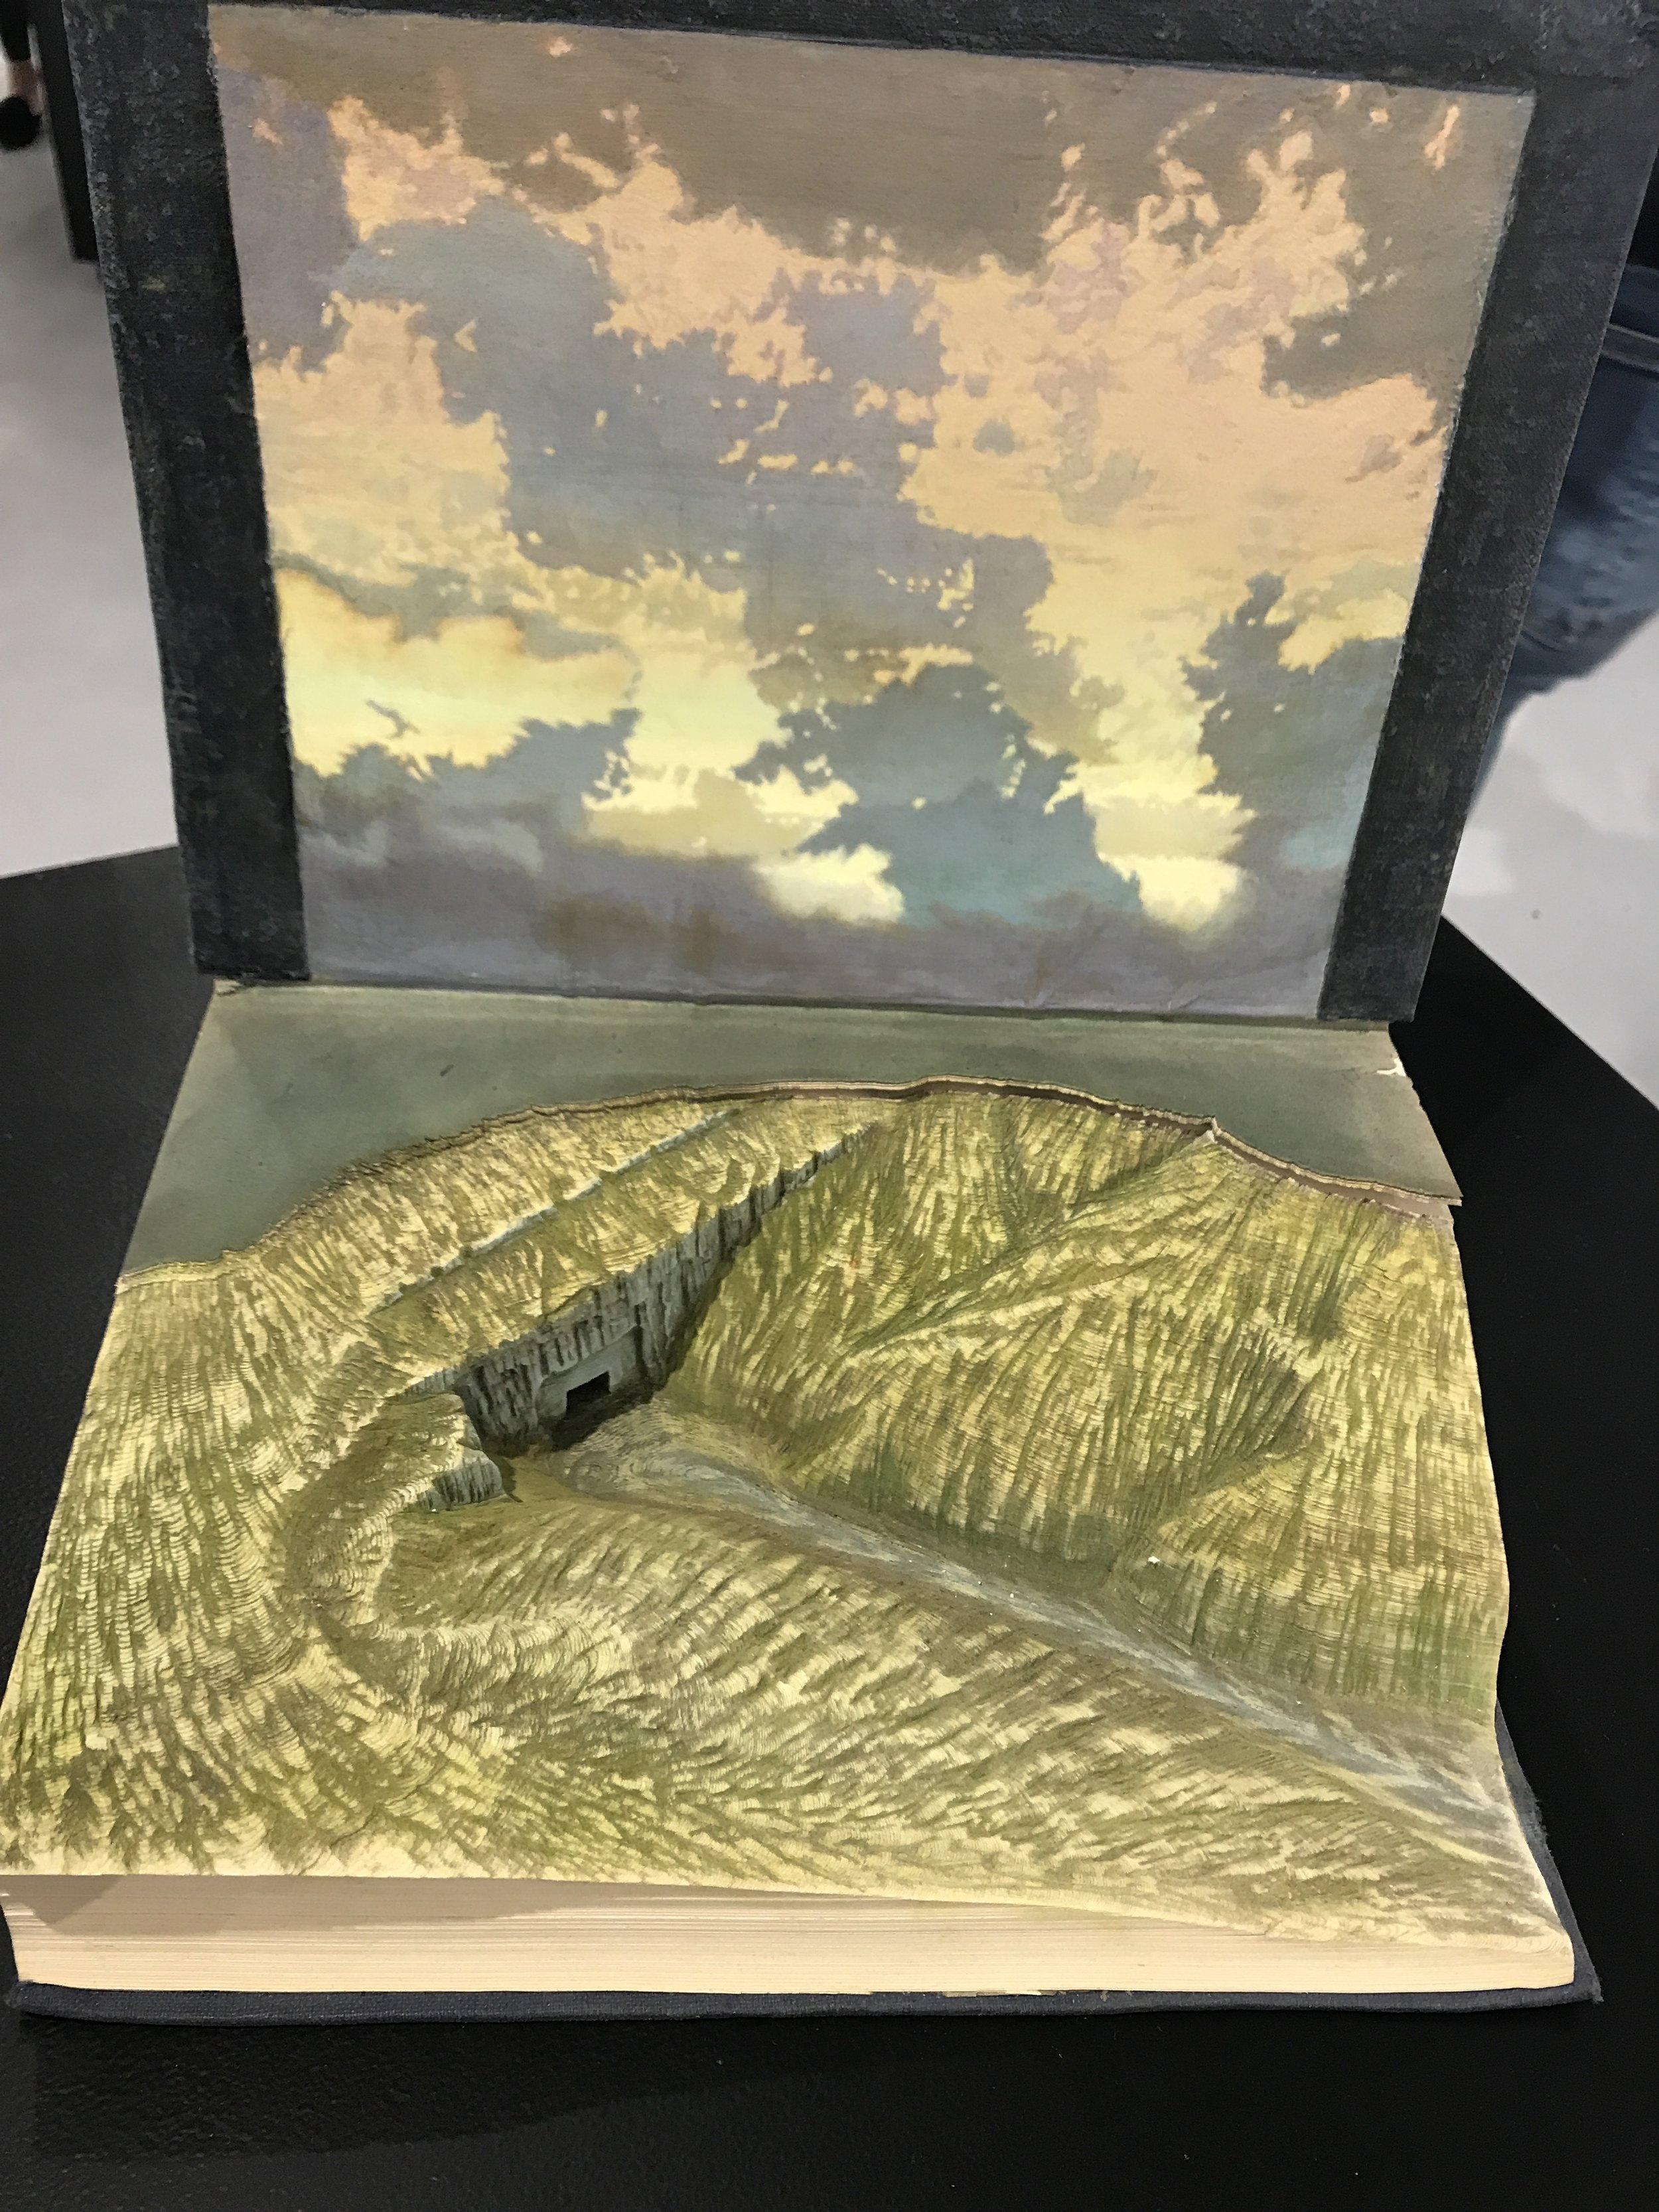 This fantastic book is carved like rock with a portal entry.